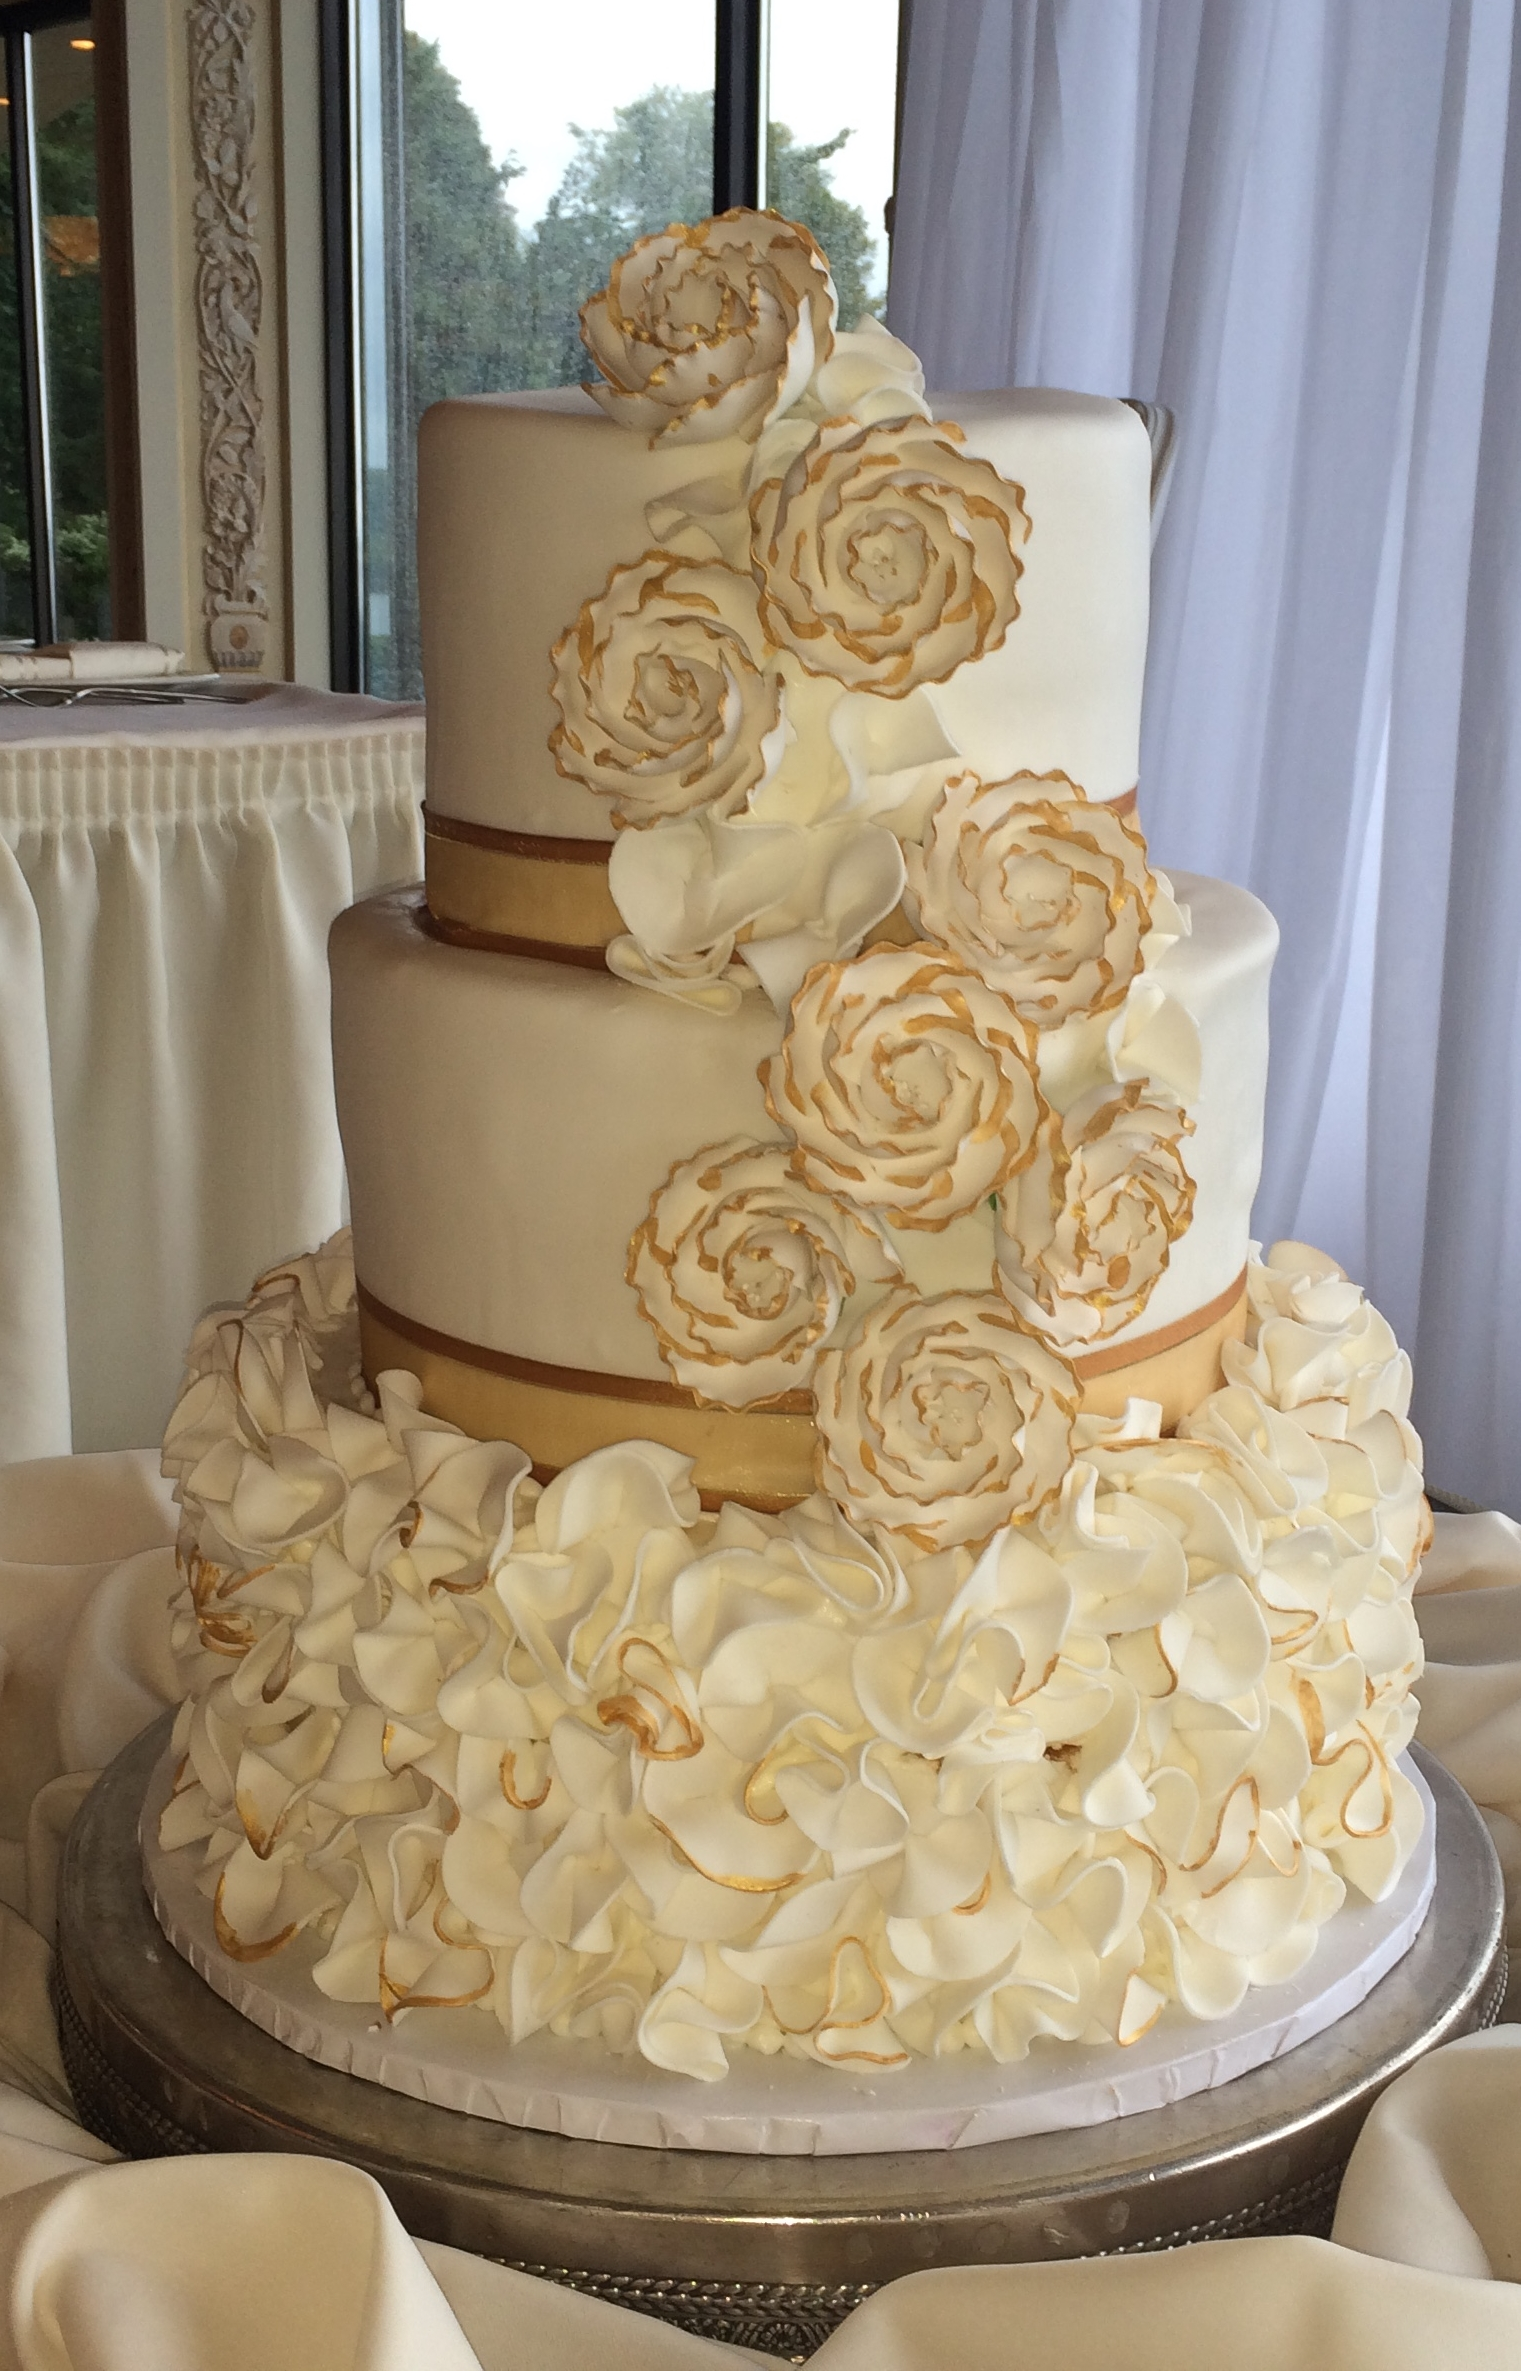 Double Tiered White Rolled Fondant Scrunches edging in gold. Cascading Roses edges in gold.jpeg